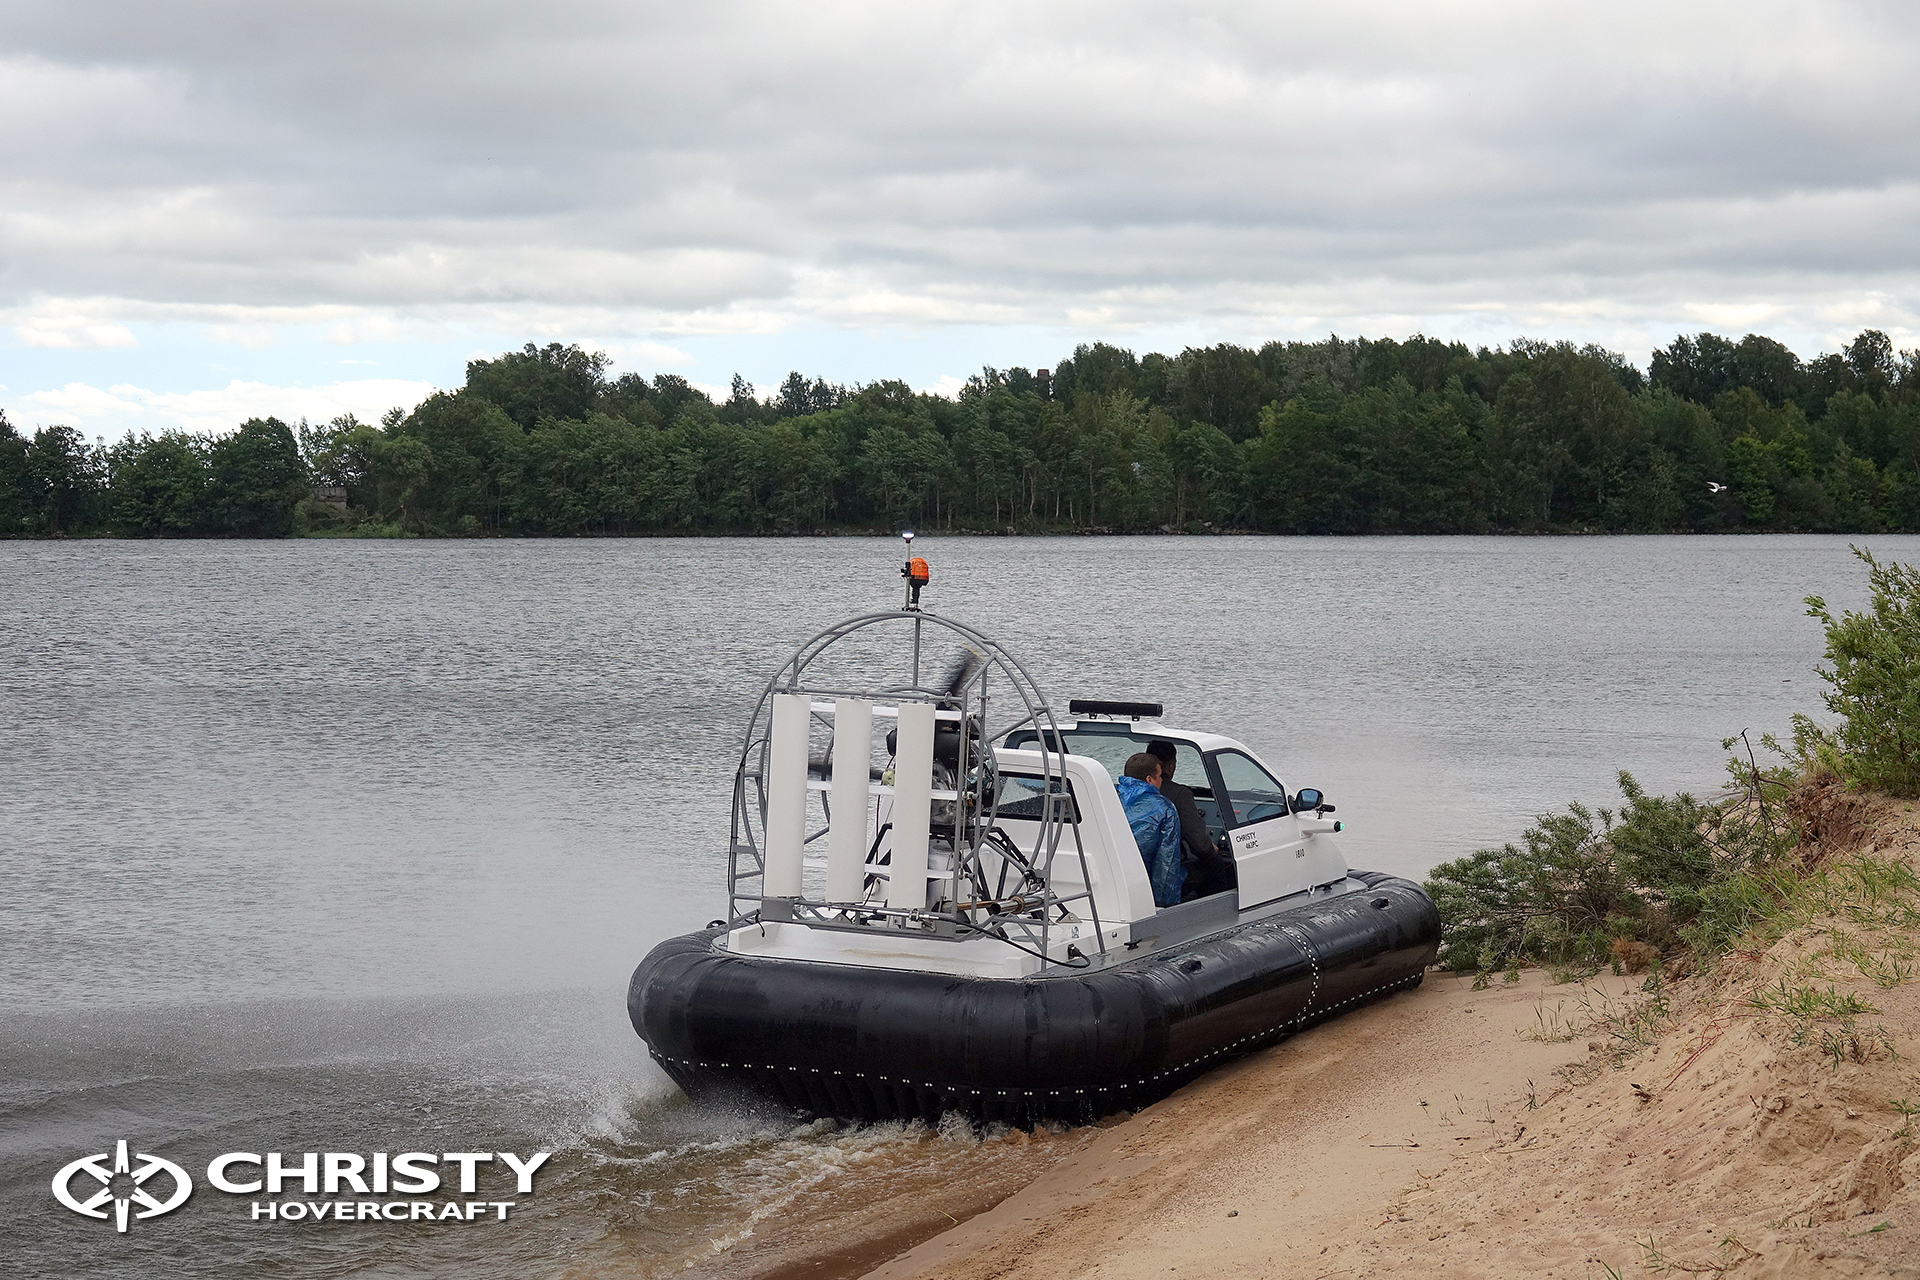 Hovercraft Christy 463 PC in Storm 290618 09.jpg | фото №7